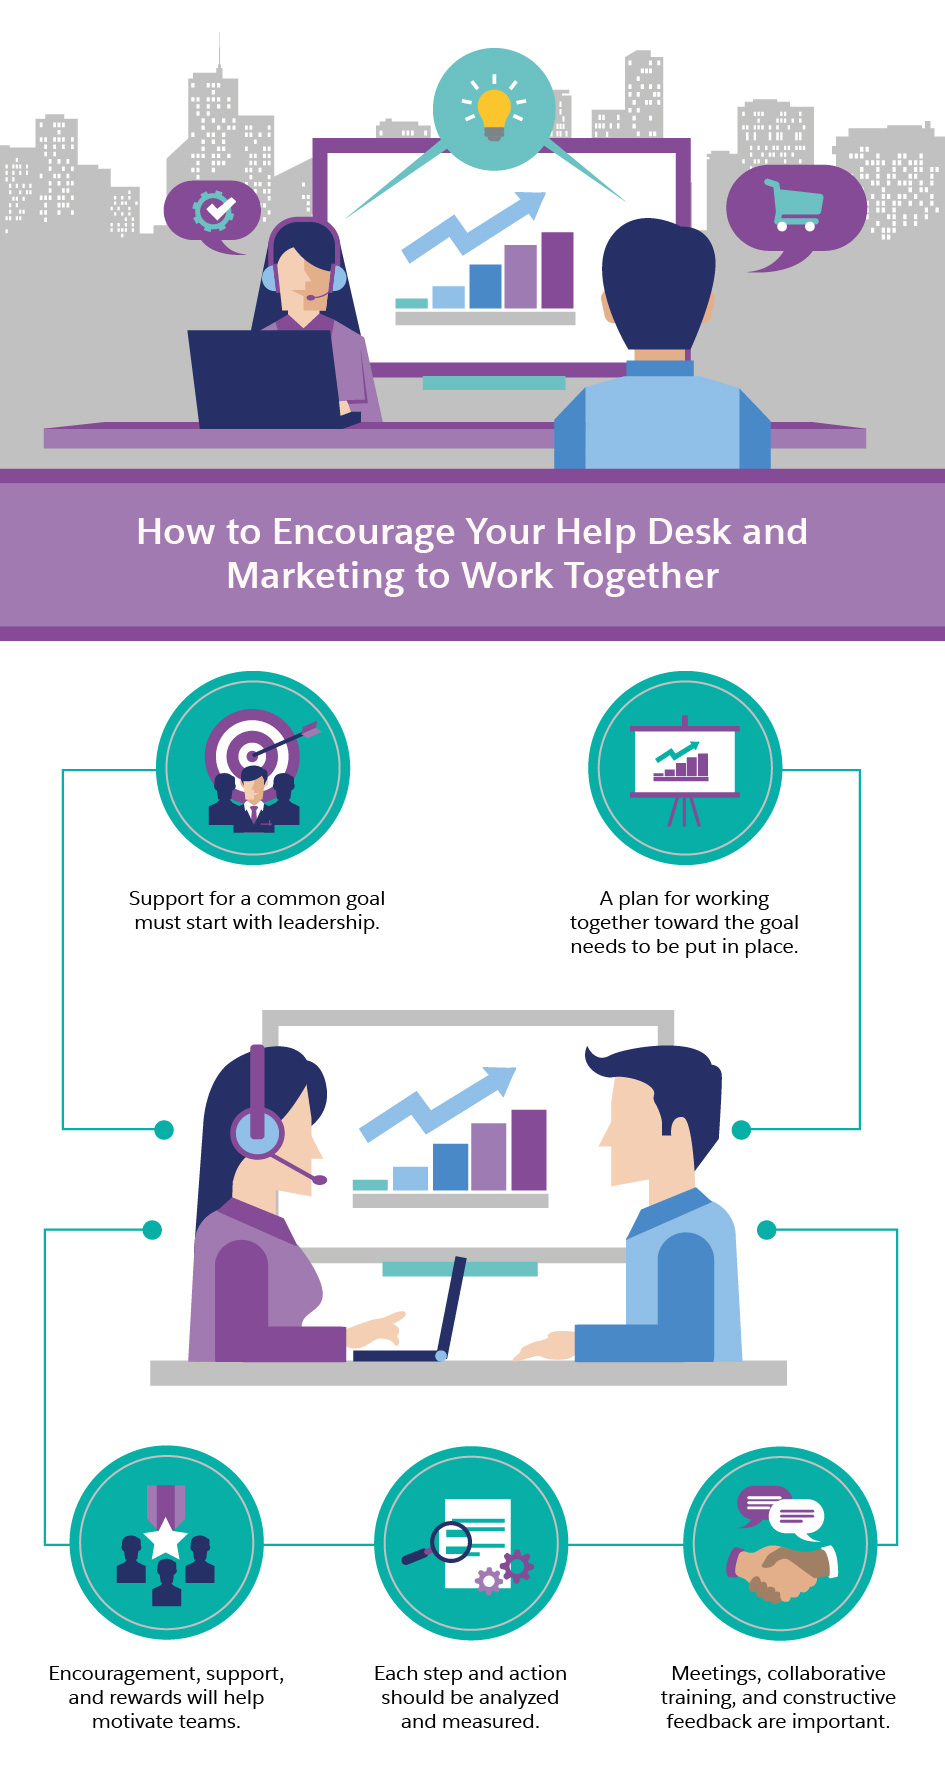 Encourage Your Help Desk and Marketing to Work Together